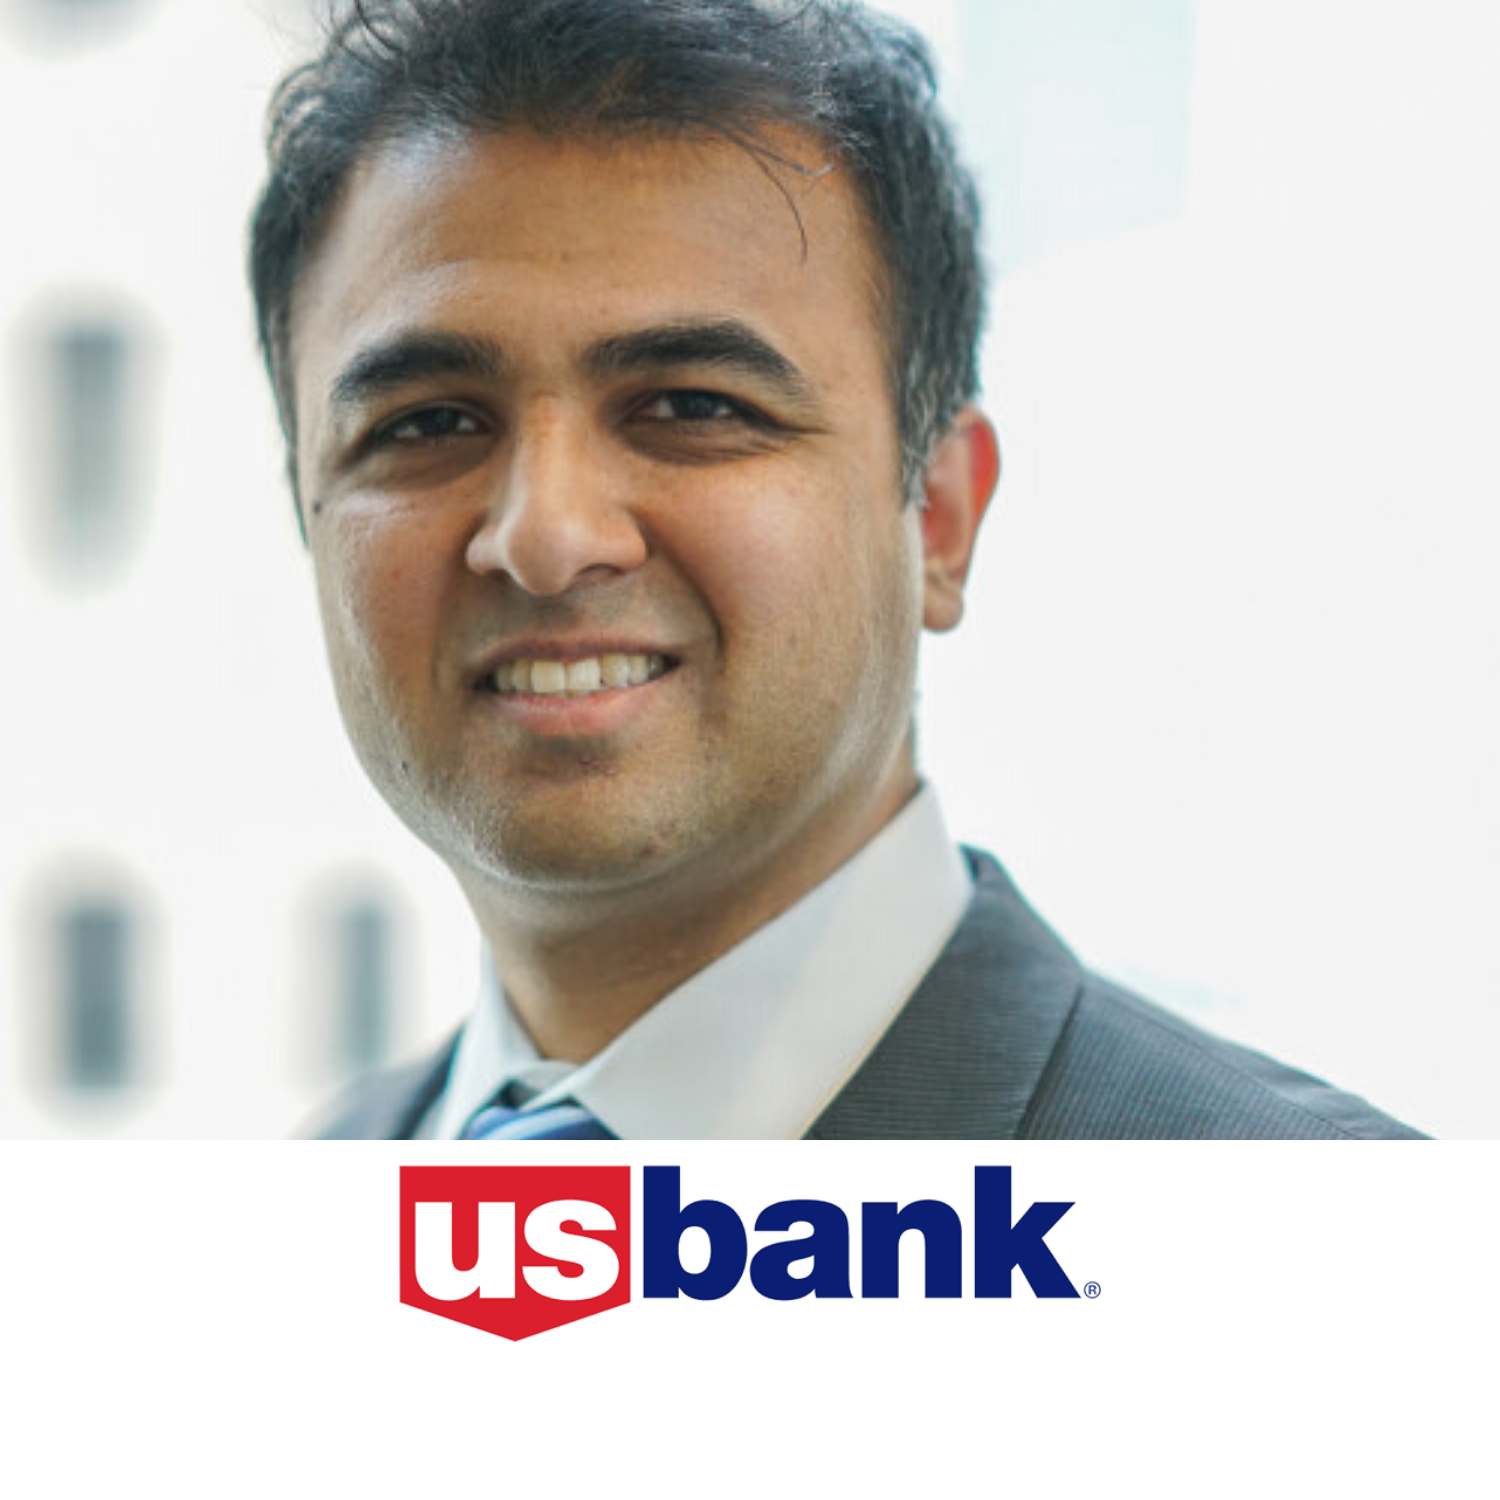 Allen Rodrigues, Sr. Director, Strategic Execution, US BANK